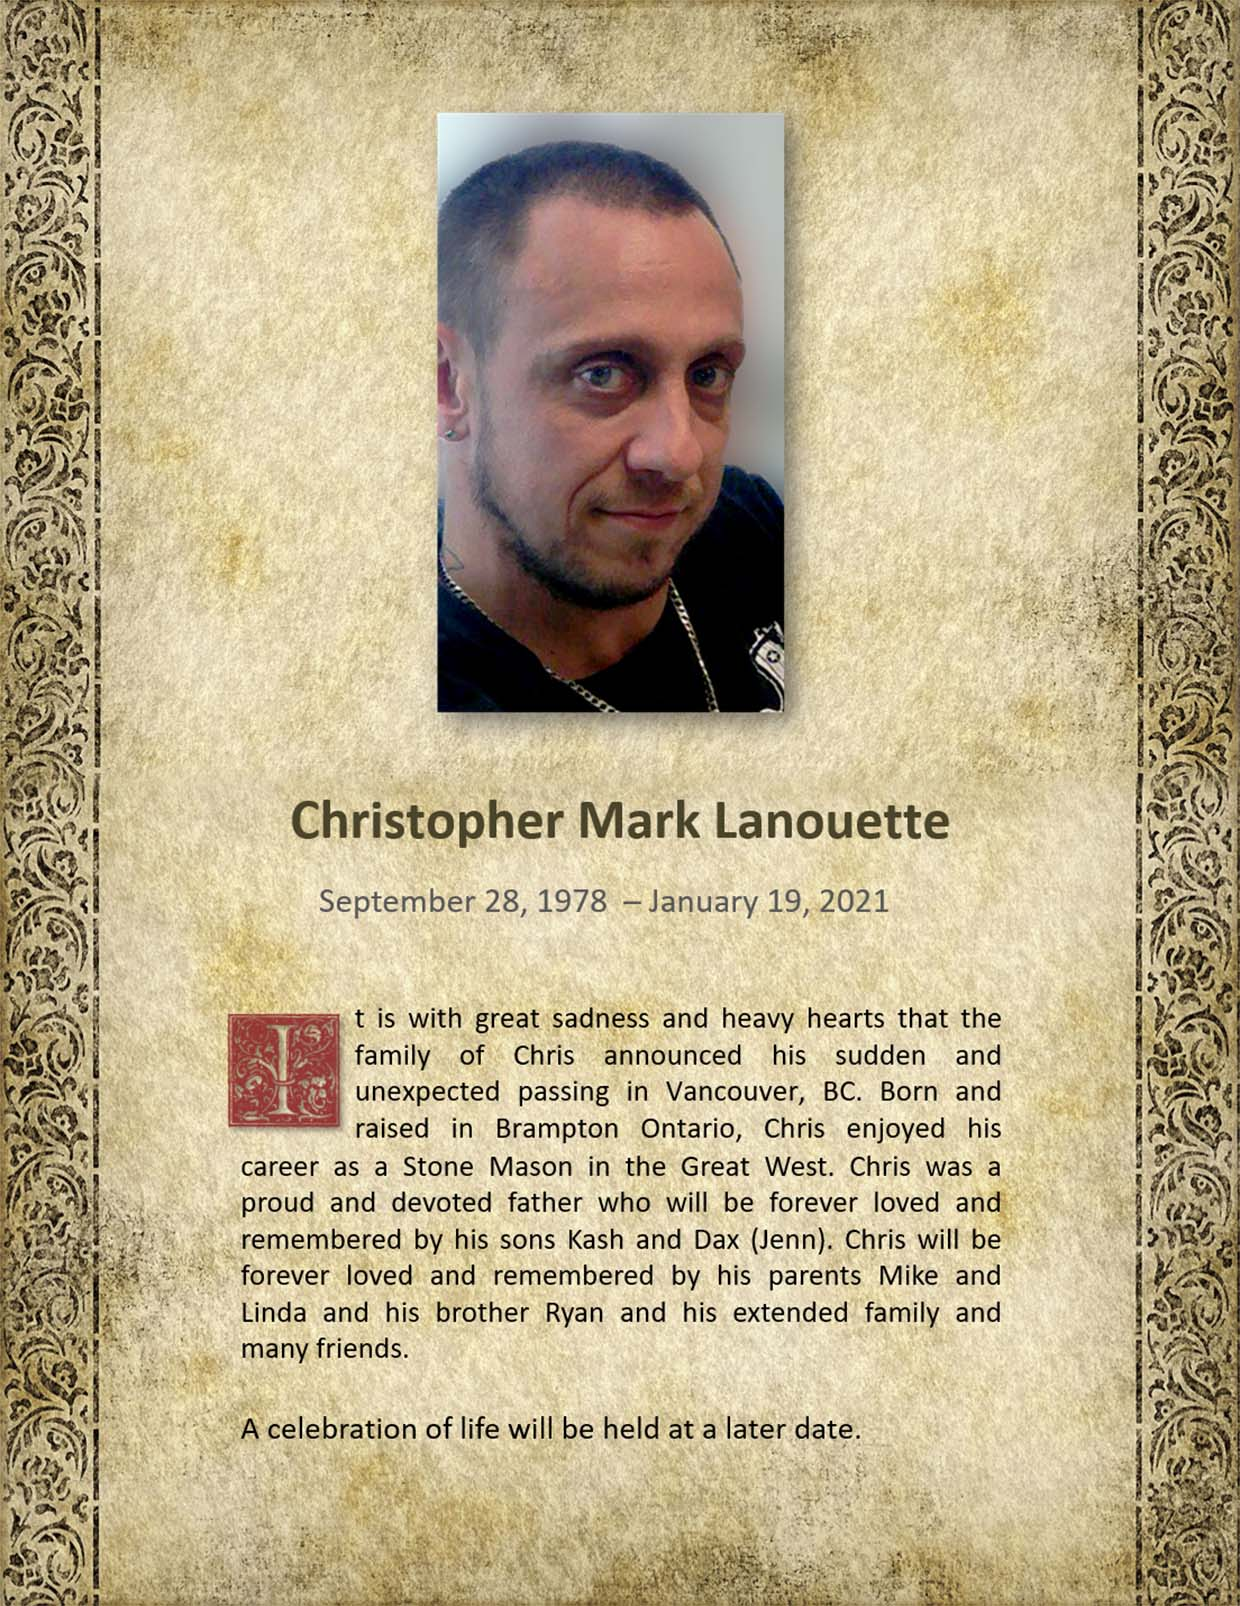 Obituary for Christopher Mark Lanouette